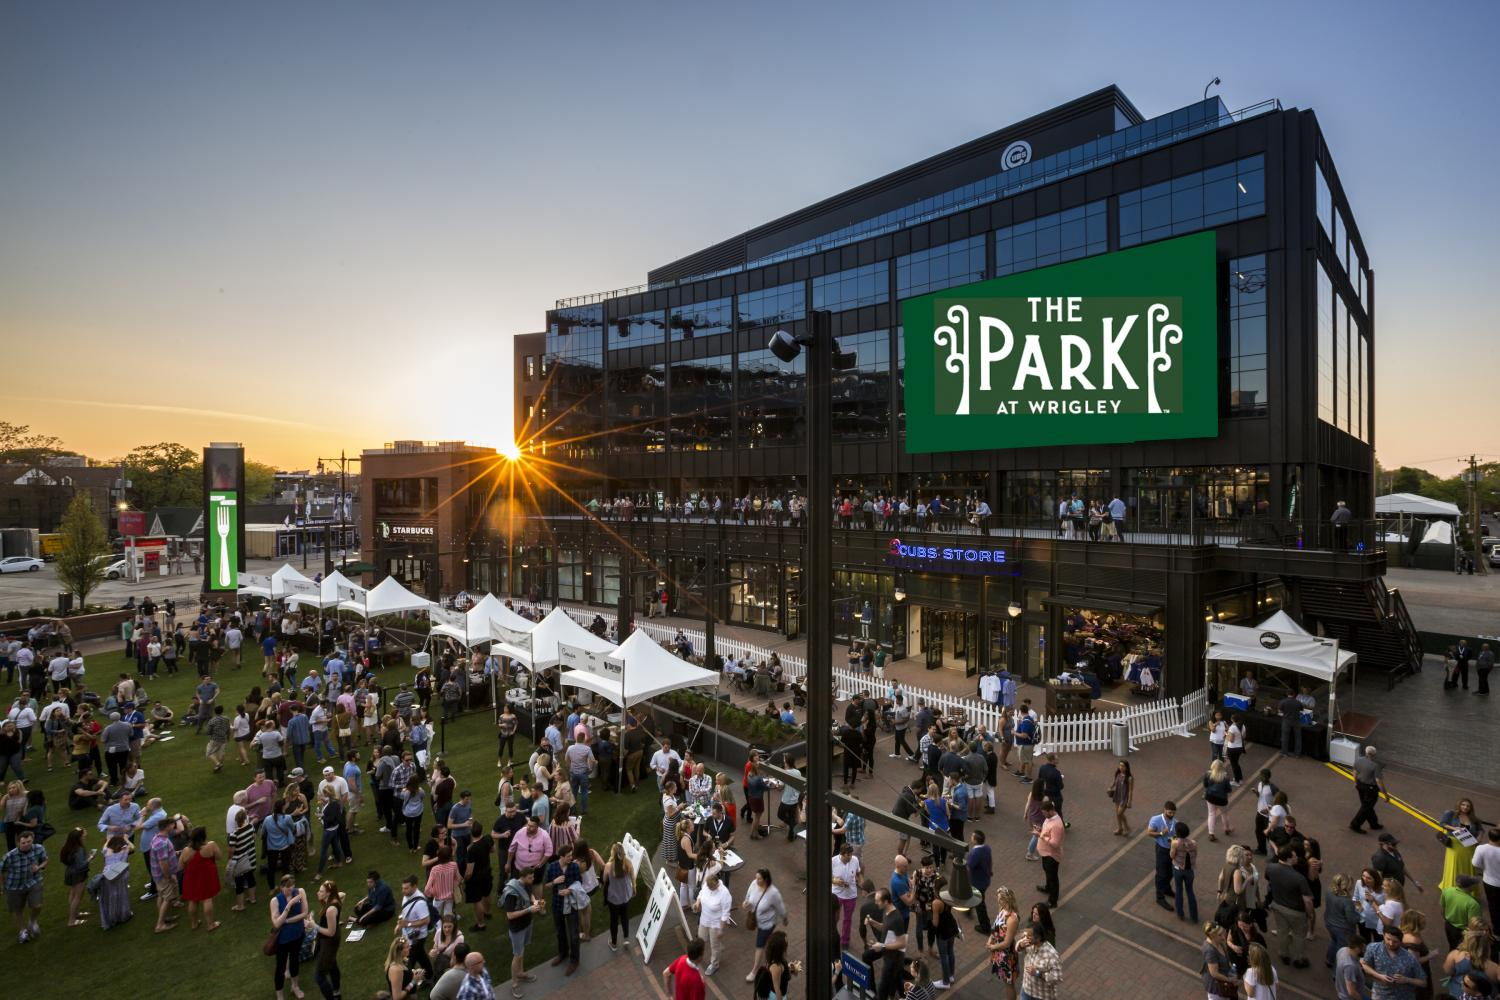 The Park at Wrigley opened April 10 and debuted one of its first events, Craft and Cuisine, on May 13. (Photo Courtesy of The Park at Wrigley)